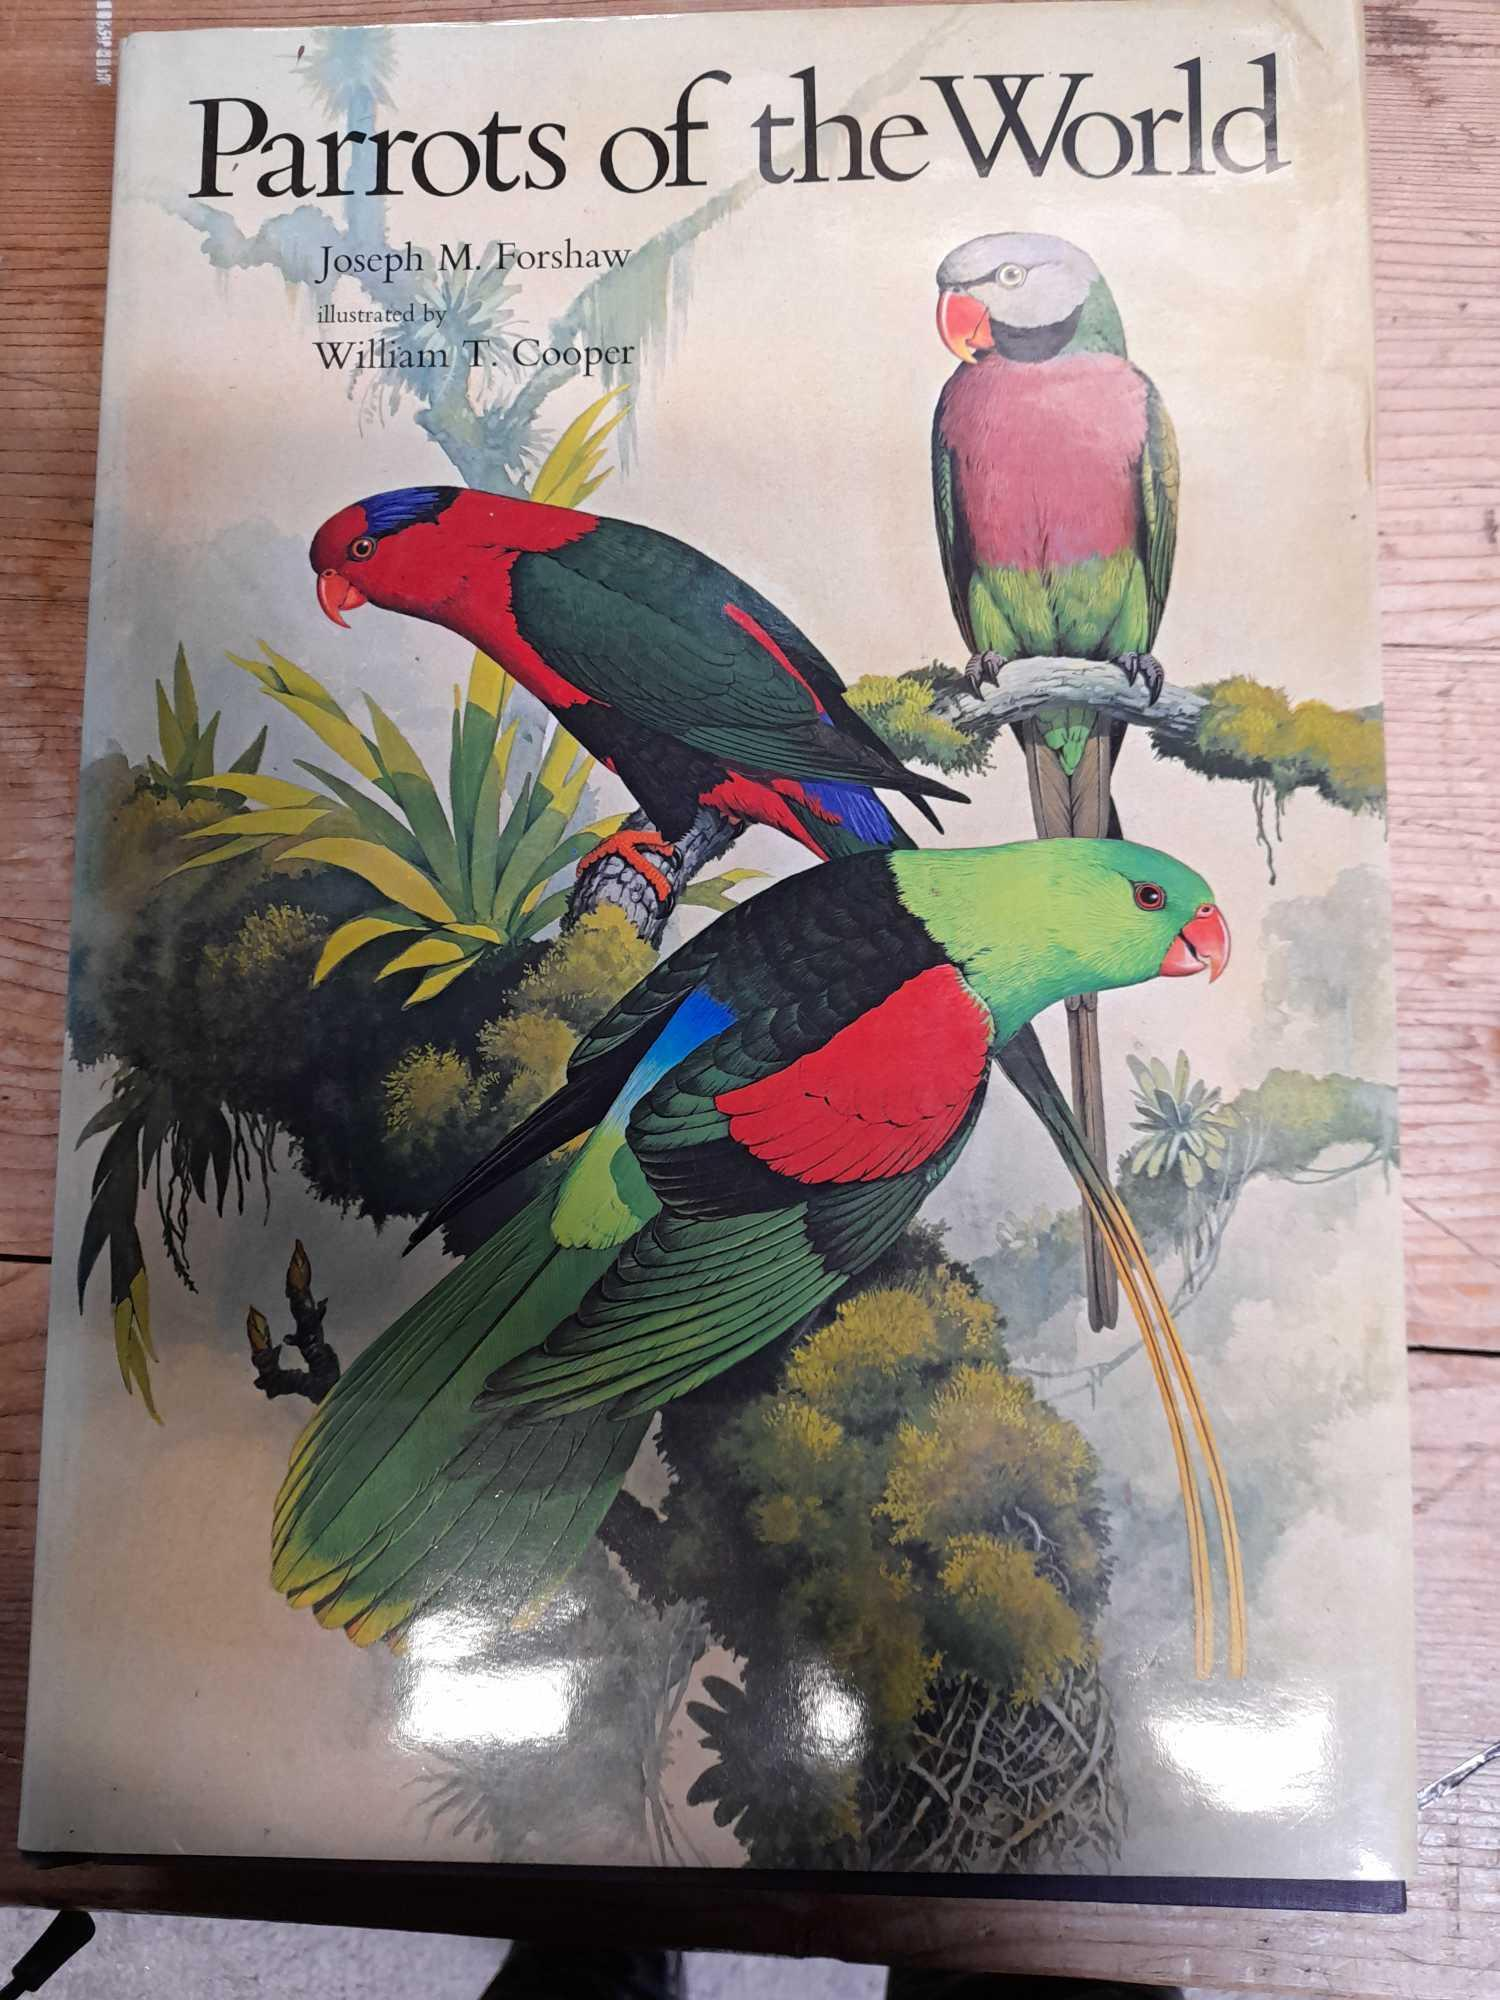 3 PARROT BOOKS - Image 14 of 20